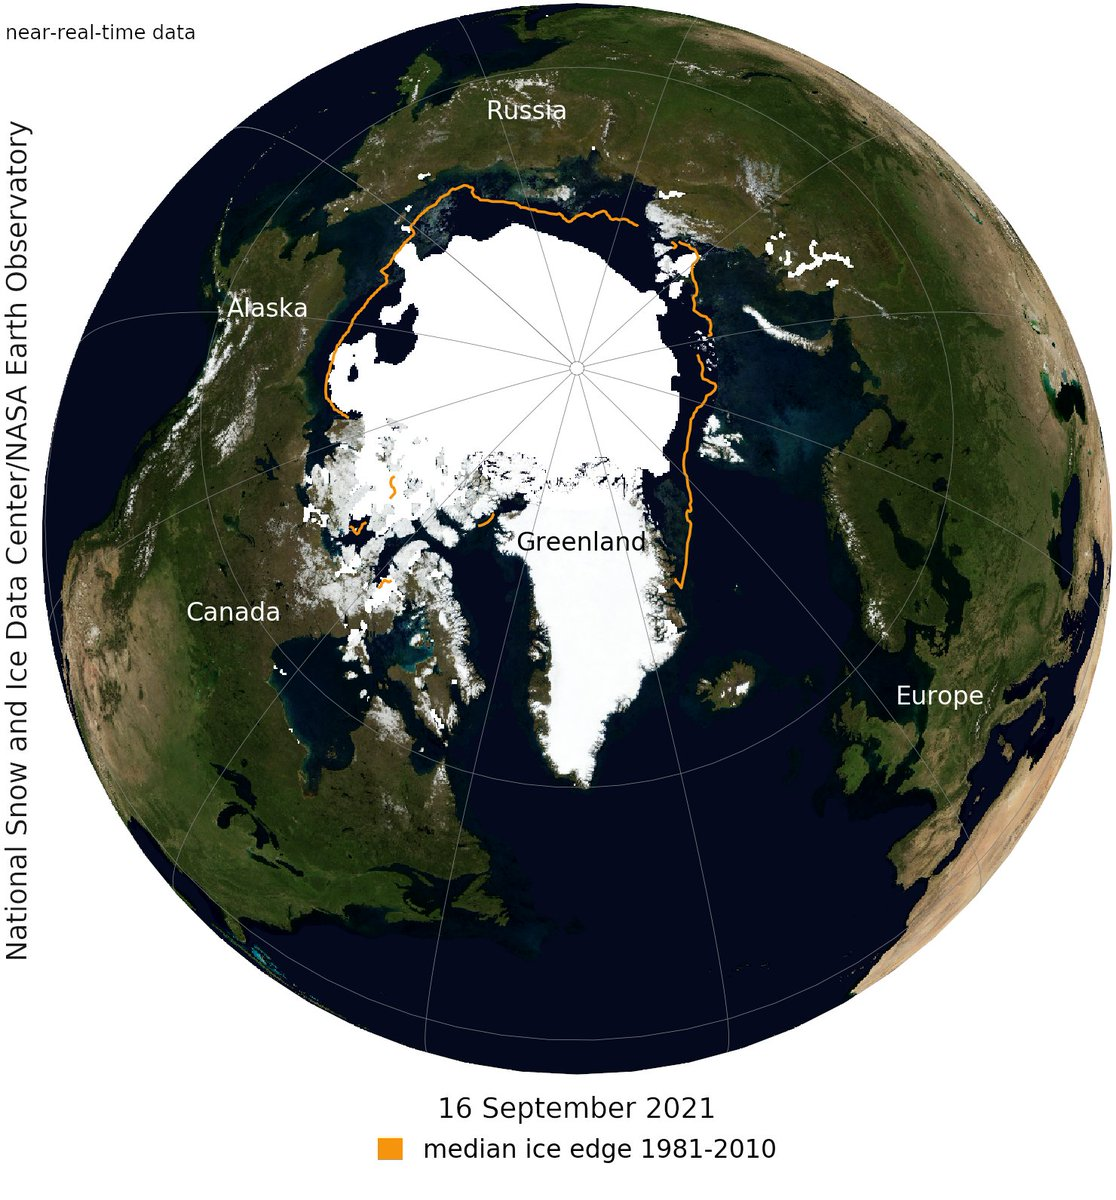 """1/3 """"By @NSIDC preliminary assessment, it looks like this year's Arctic summer sea ice minimum will be one of highest in past decade - but volume of multi-year ice is one of the lowest recorded"""" @Sian_Prior9 @CleanArctic https://t.co/VdsGMDRoV4"""